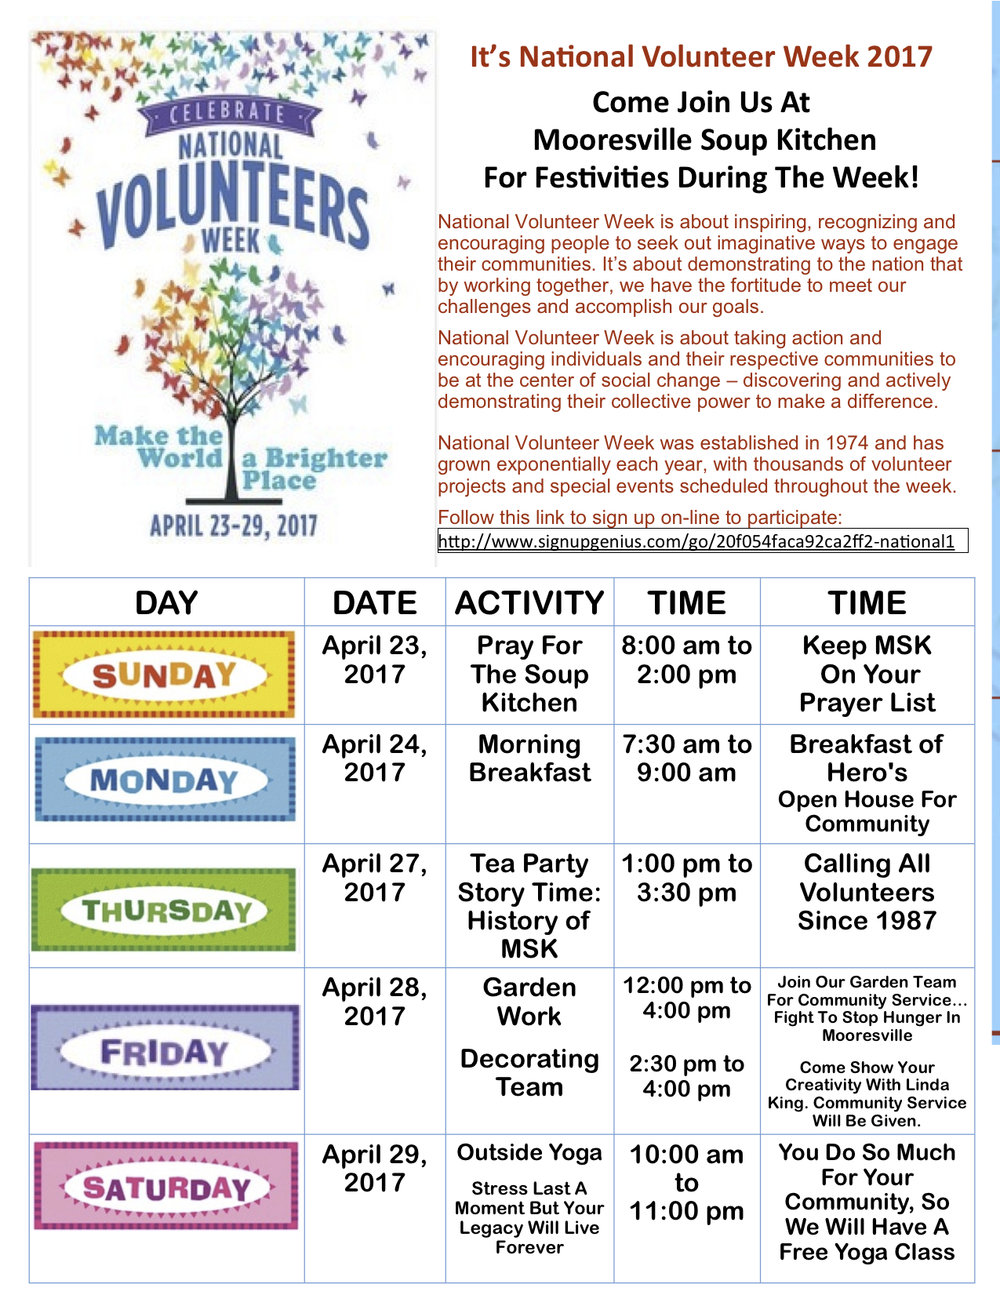 National Volunteer Week is Coming Up! — Mooresville Soup Kitchen